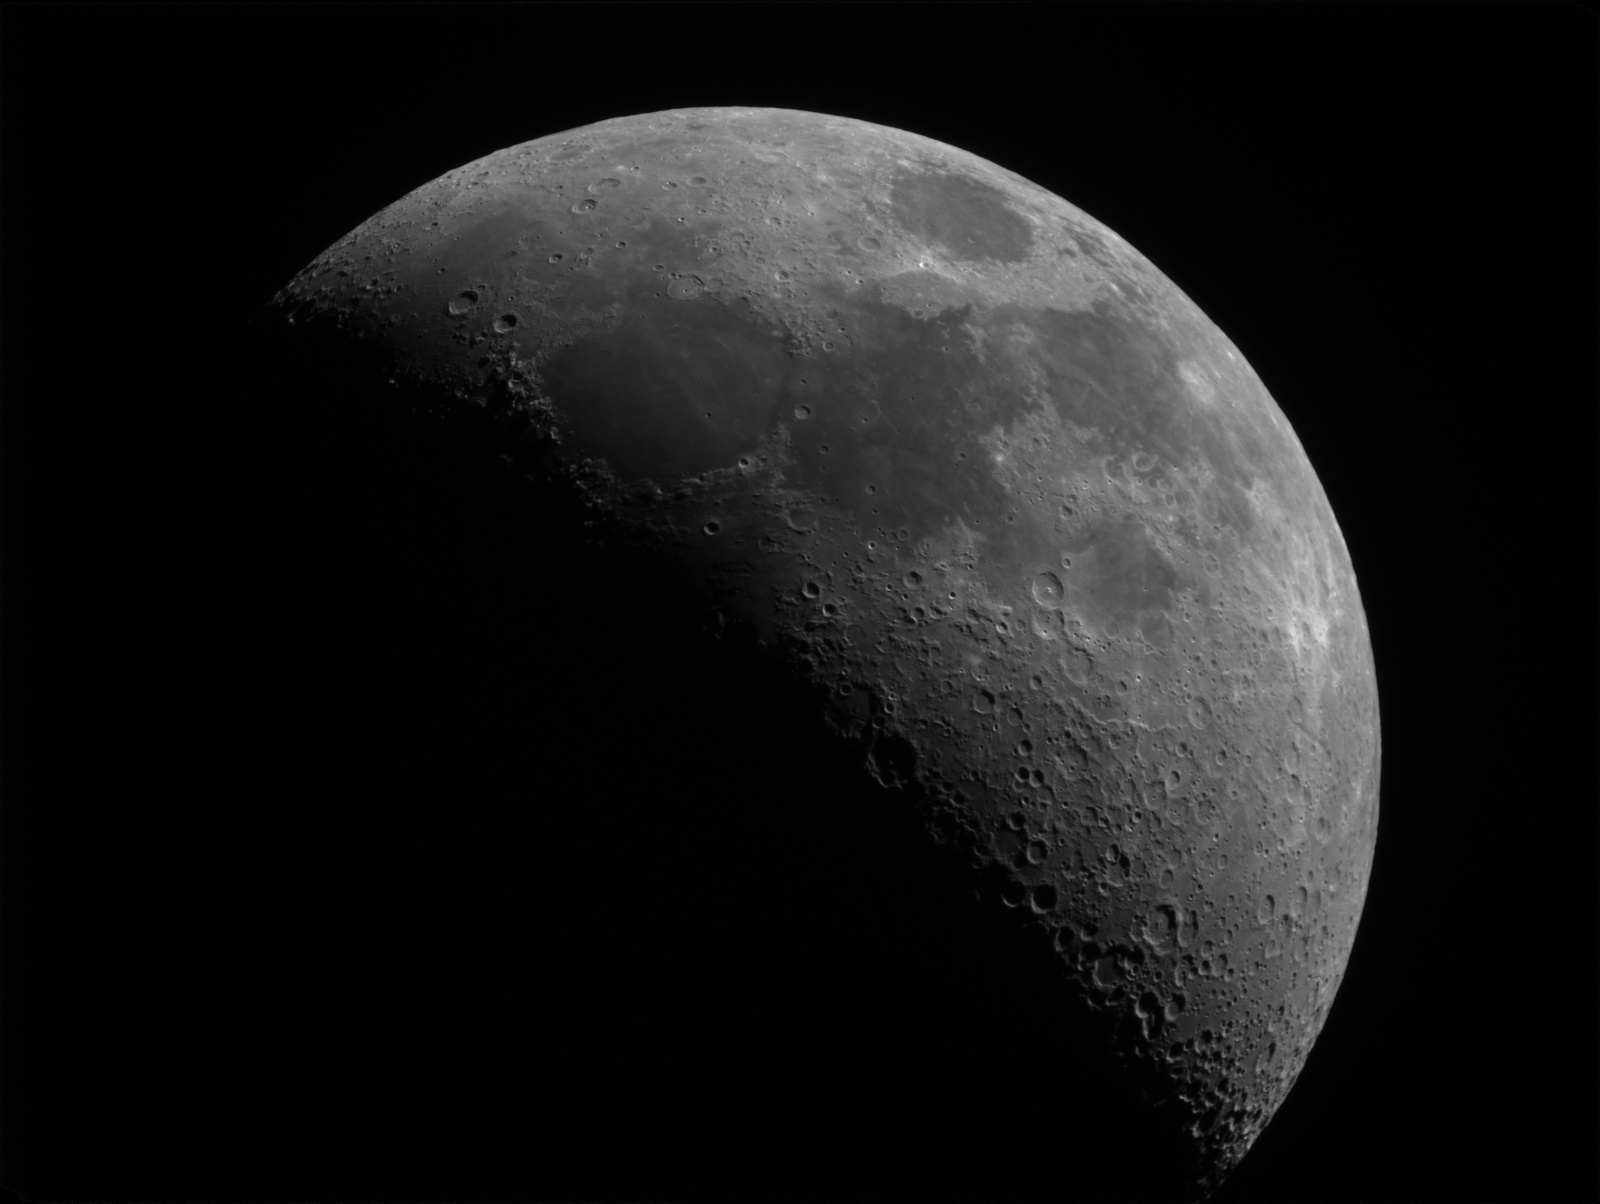 First Light with ASI1600mm Pro